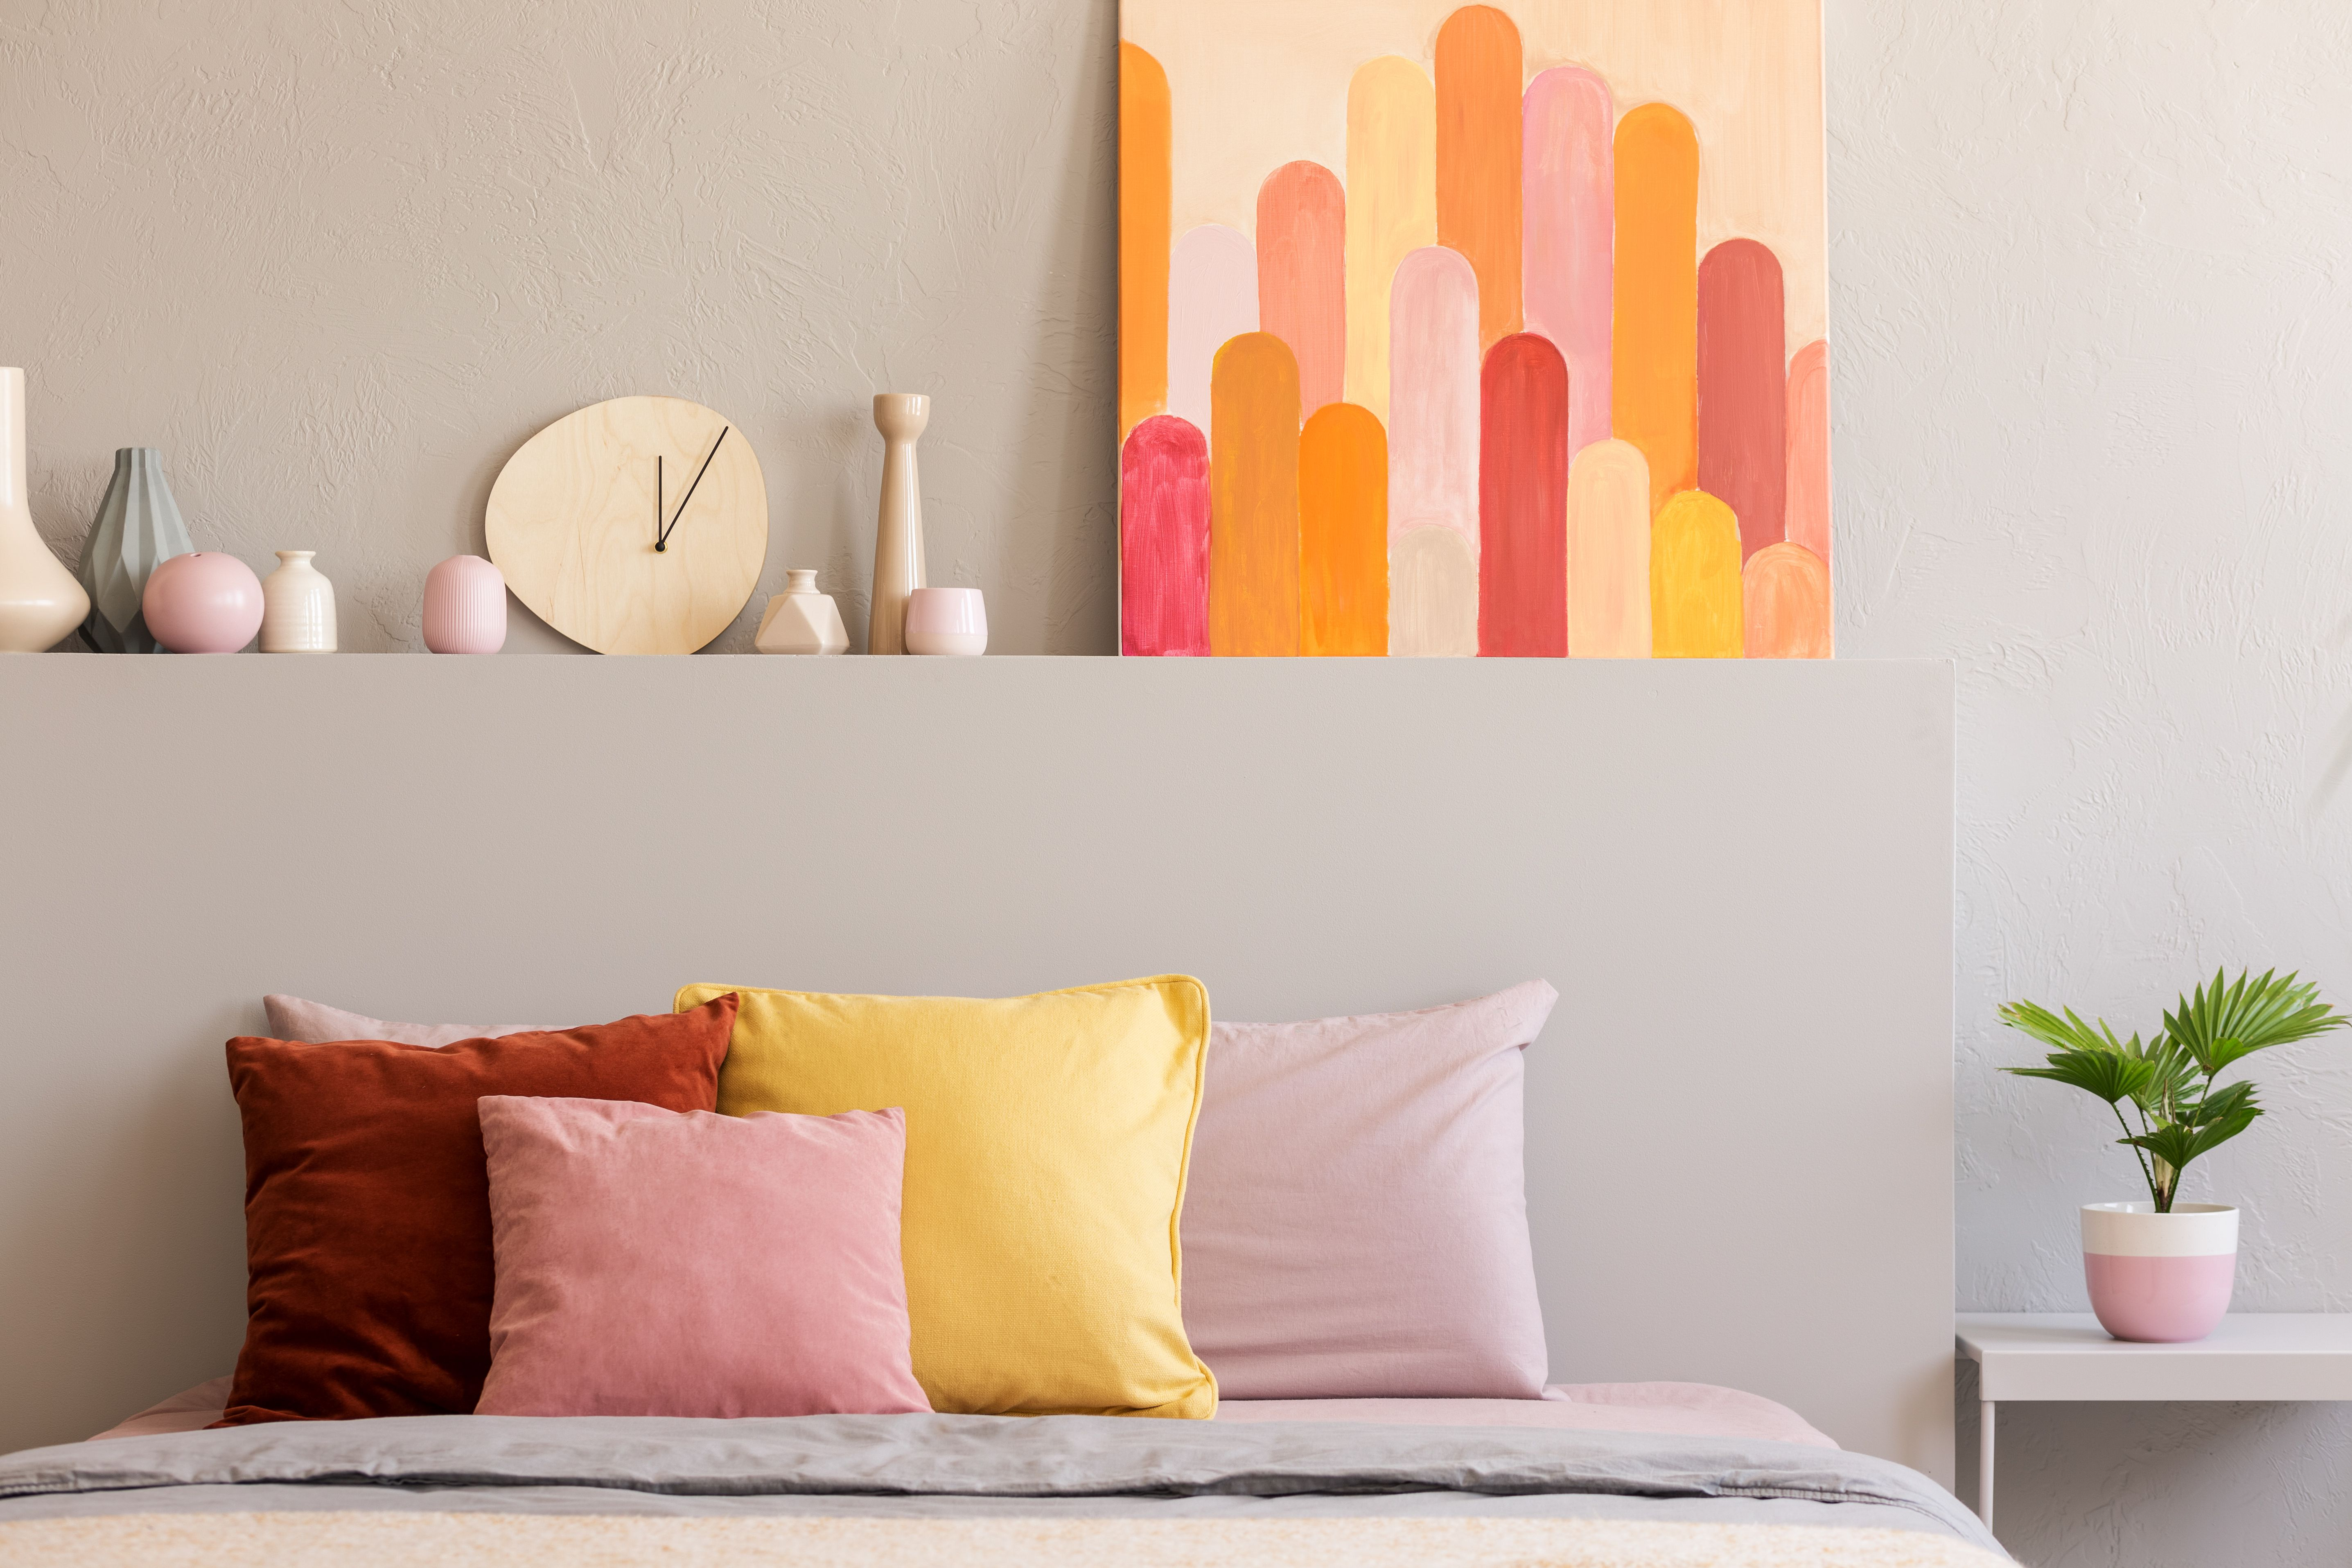 8 Colorful Decoration Ideas For A Small Bedroom